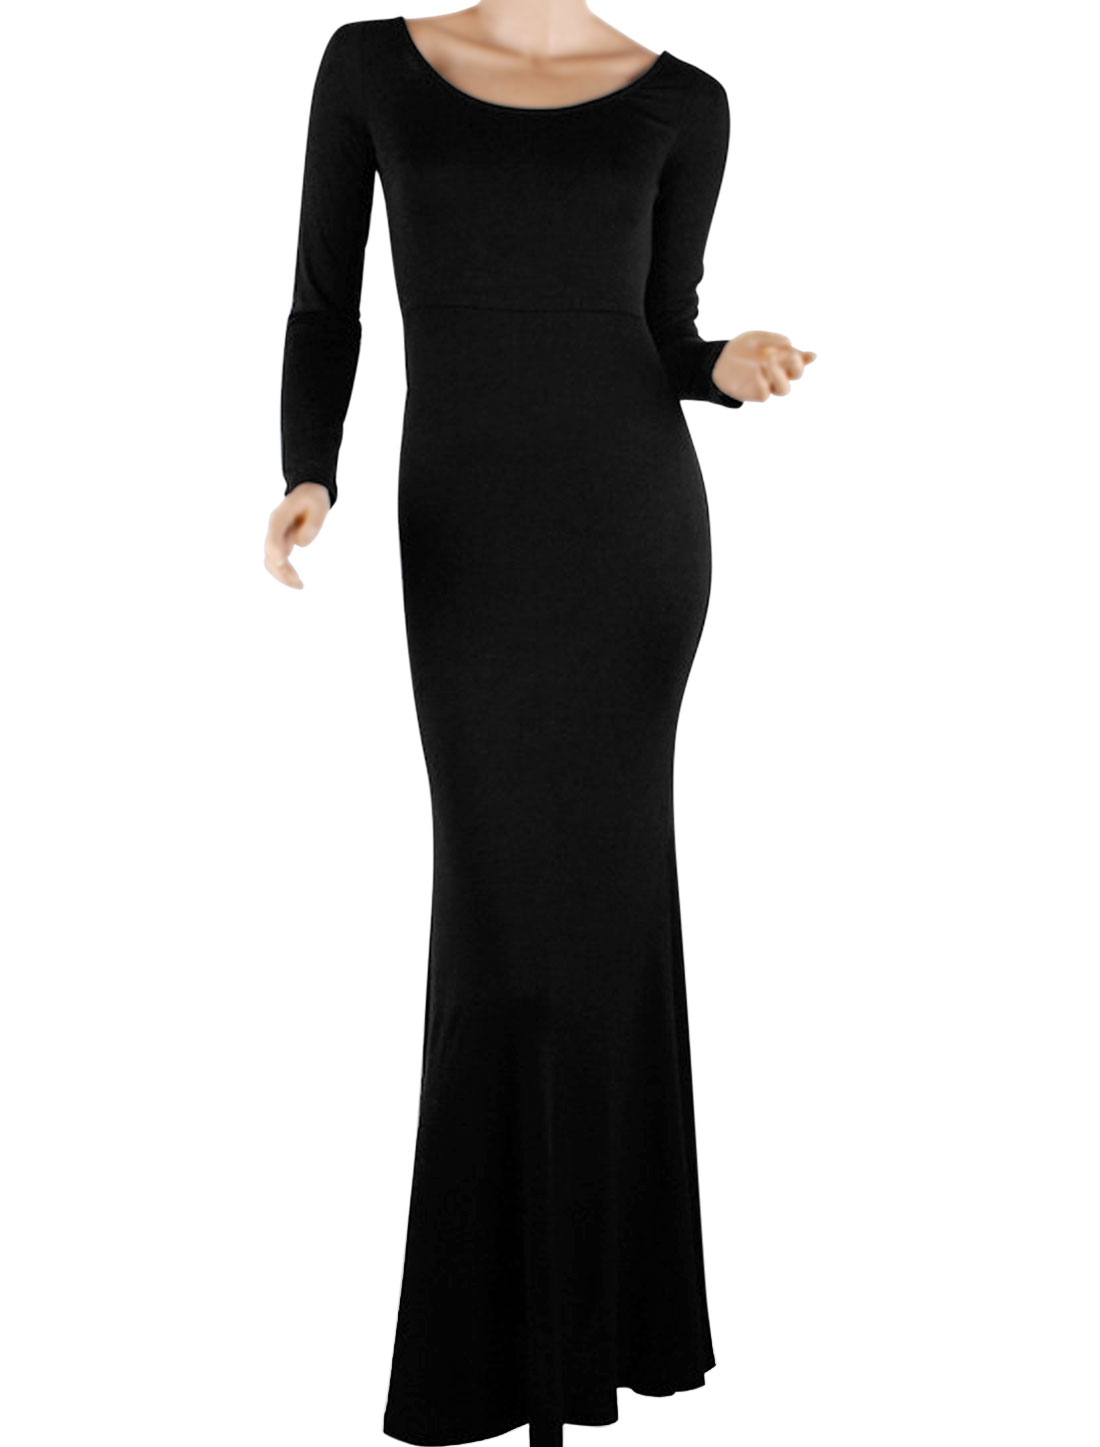 Women Scoop Neck Long Sleeves Backless Design Dress Black L